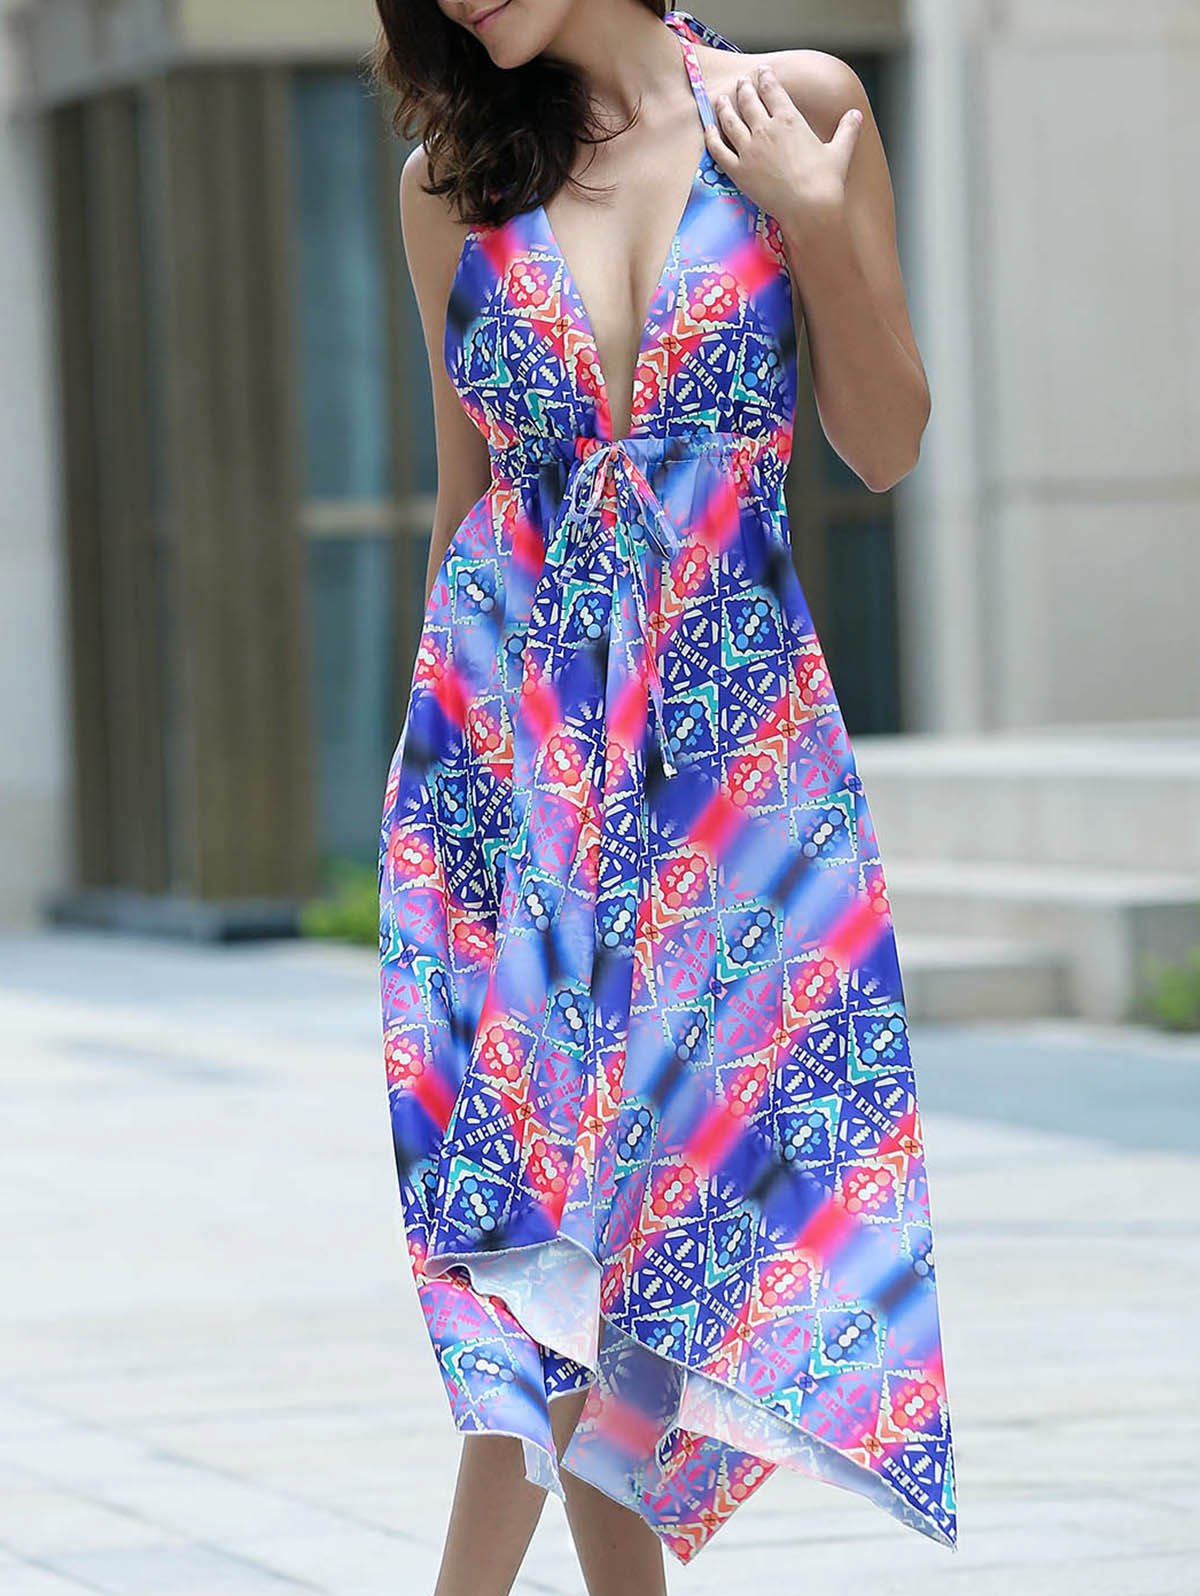 Trendy Halter Printed Backless Asymmetrical Women's Dress - COLORMIX ONE SIZE(FIT SIZE XS TO M)